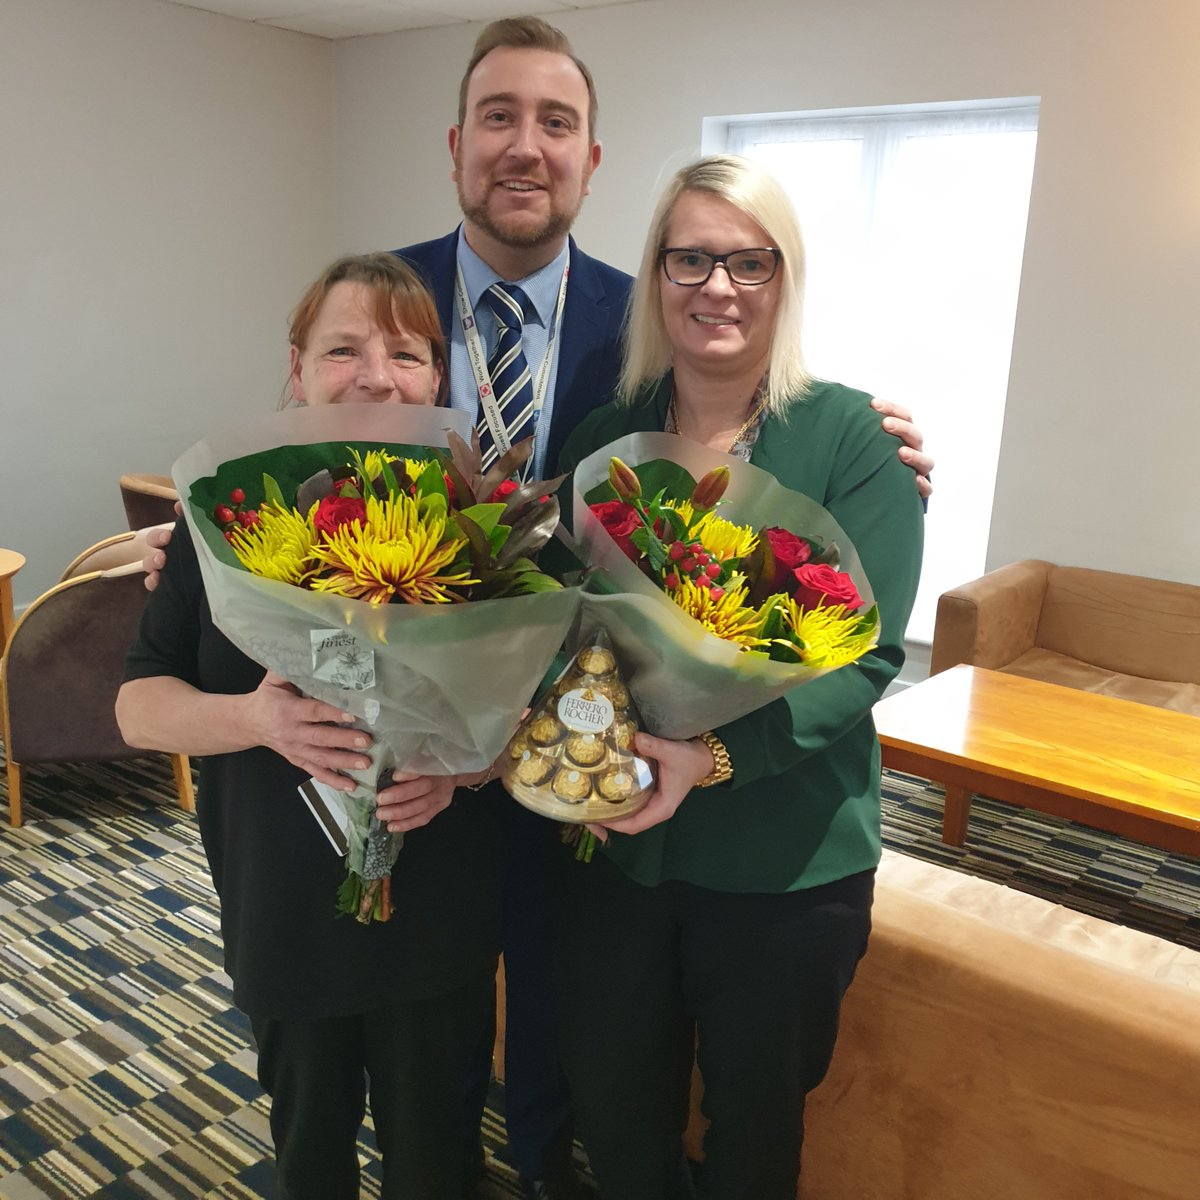 Well done to Magdalena Makowska and Joyce Tweedale at the HI Express Manchester East for receiving an appreciation gift from the GM for improved guest scores!  #Housekeeping #Hotels #OneBestWay #WGC #Team #LoveToClean  #HotelHousekeepingpic.twitter.com/e8mnZ9AMwq